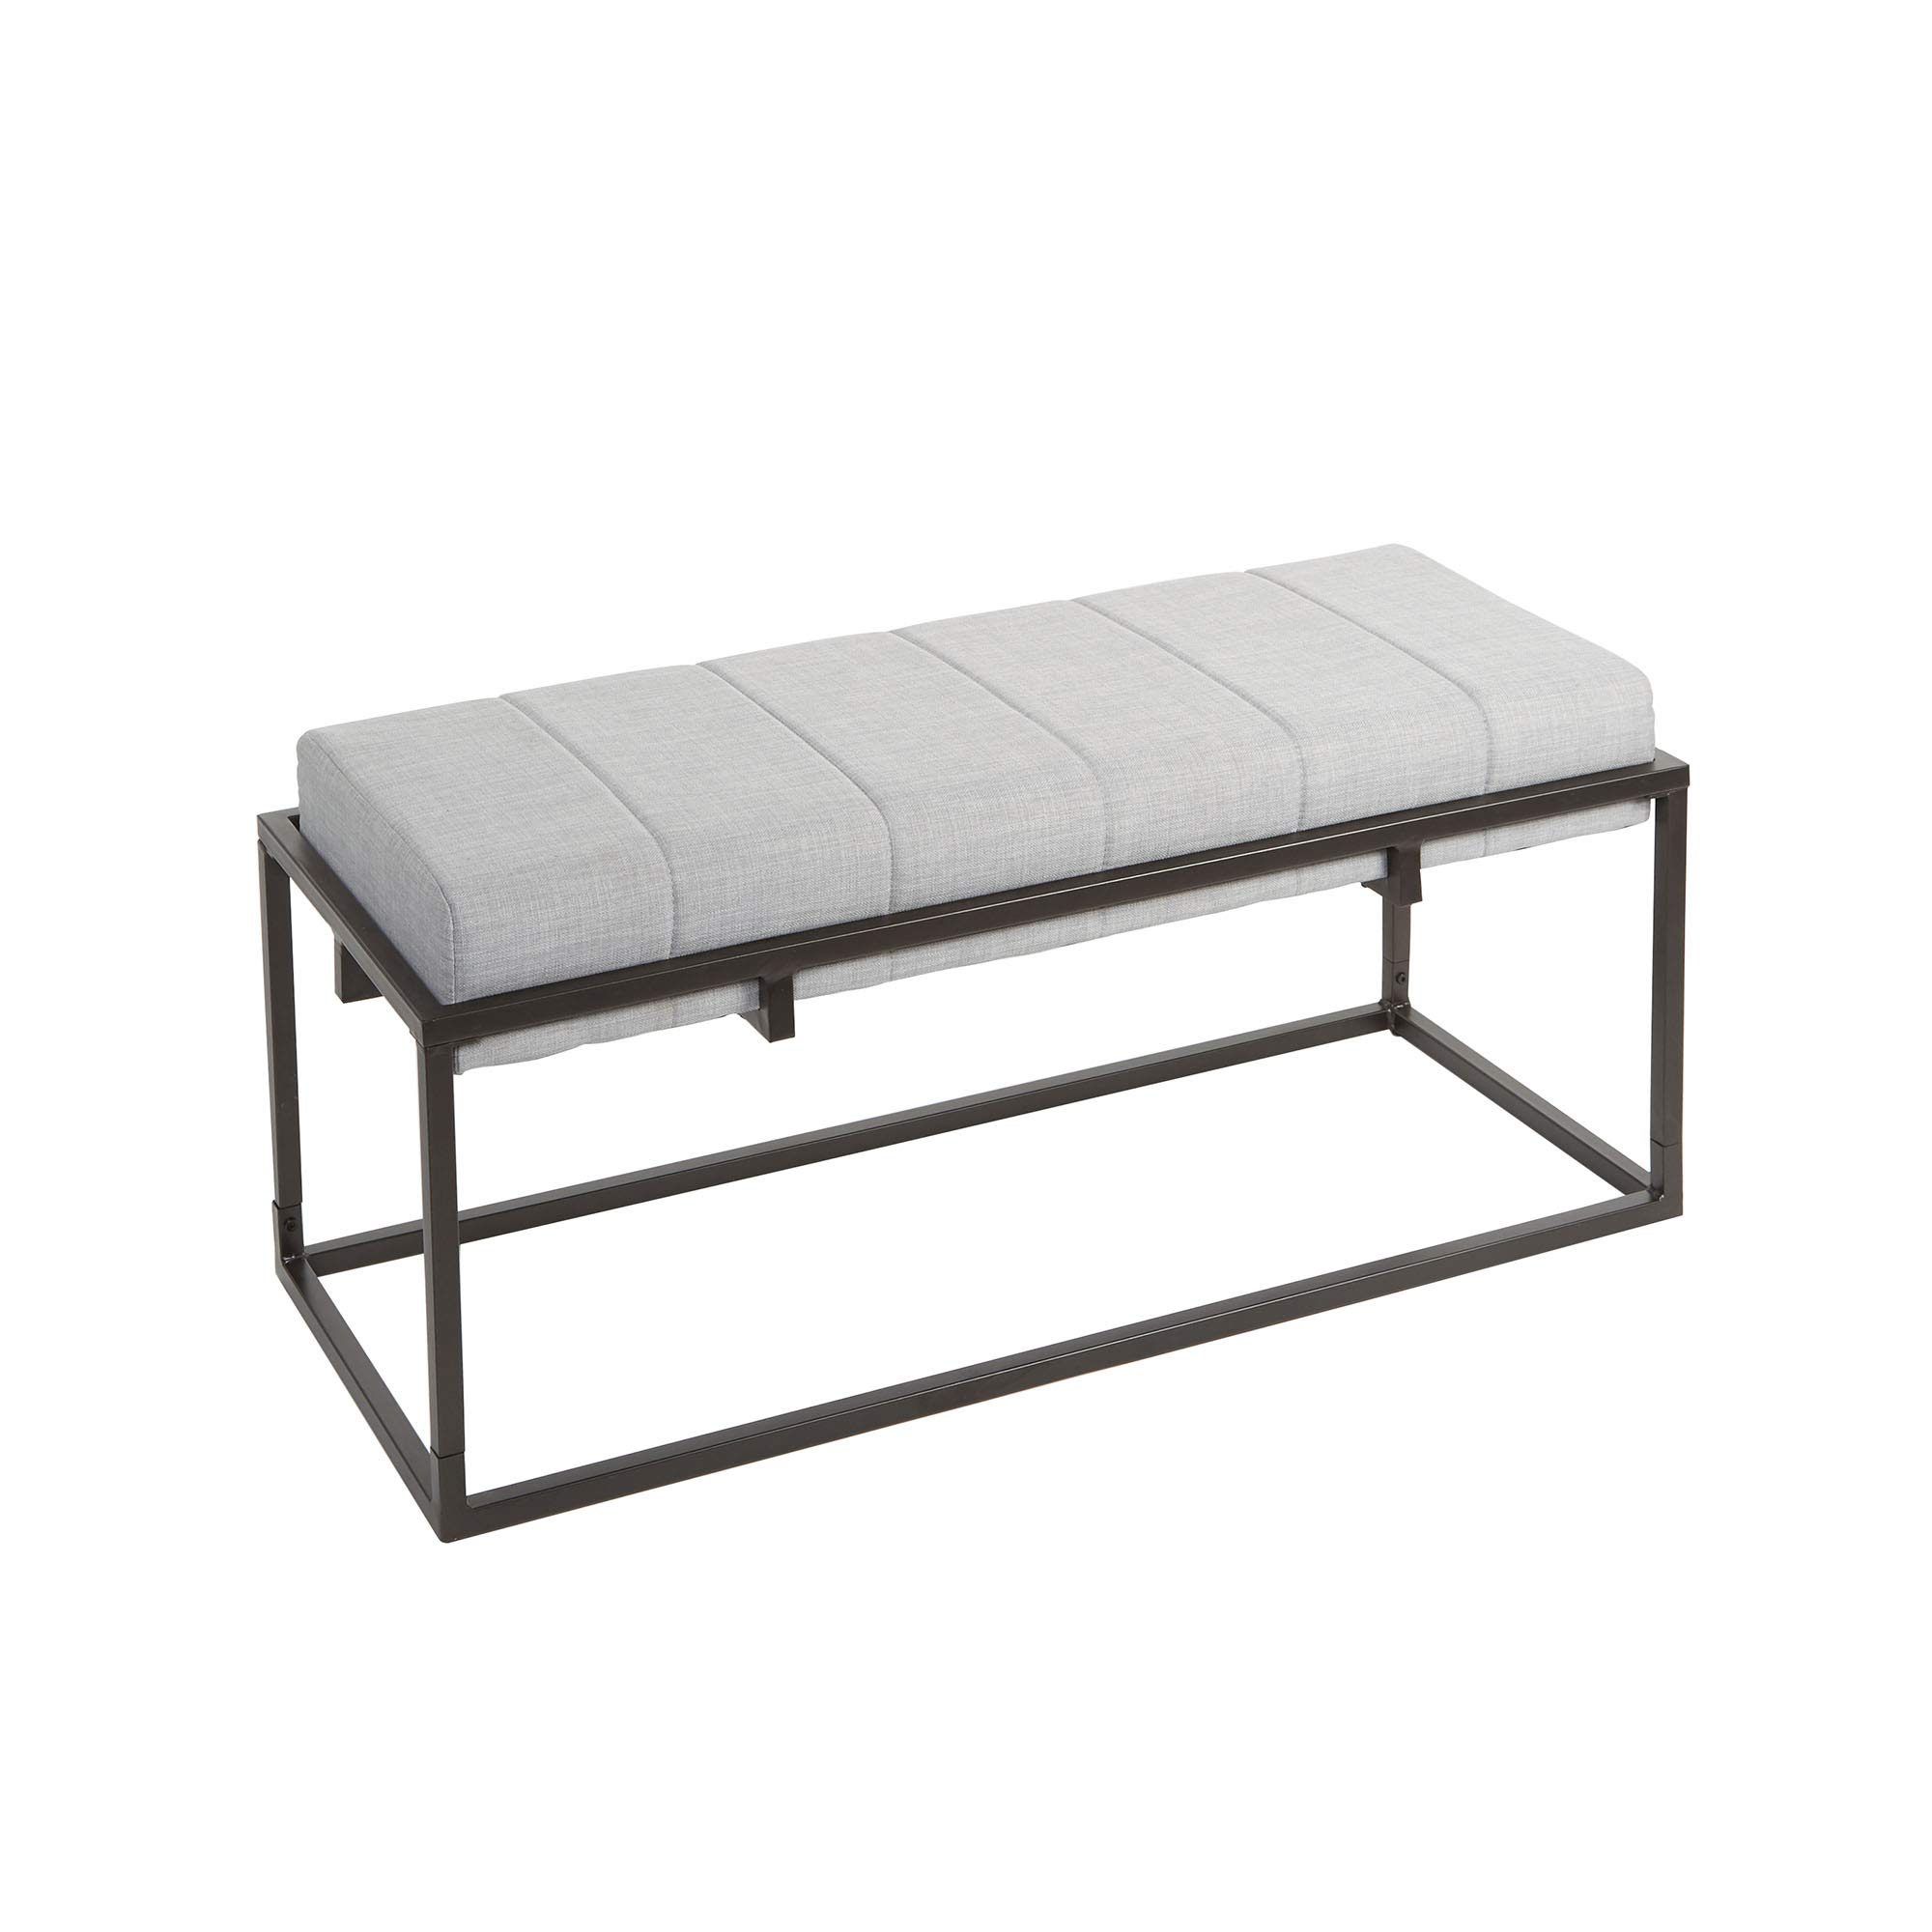 Silverwood Upholstered Bench, Gunmetal by Silverwood